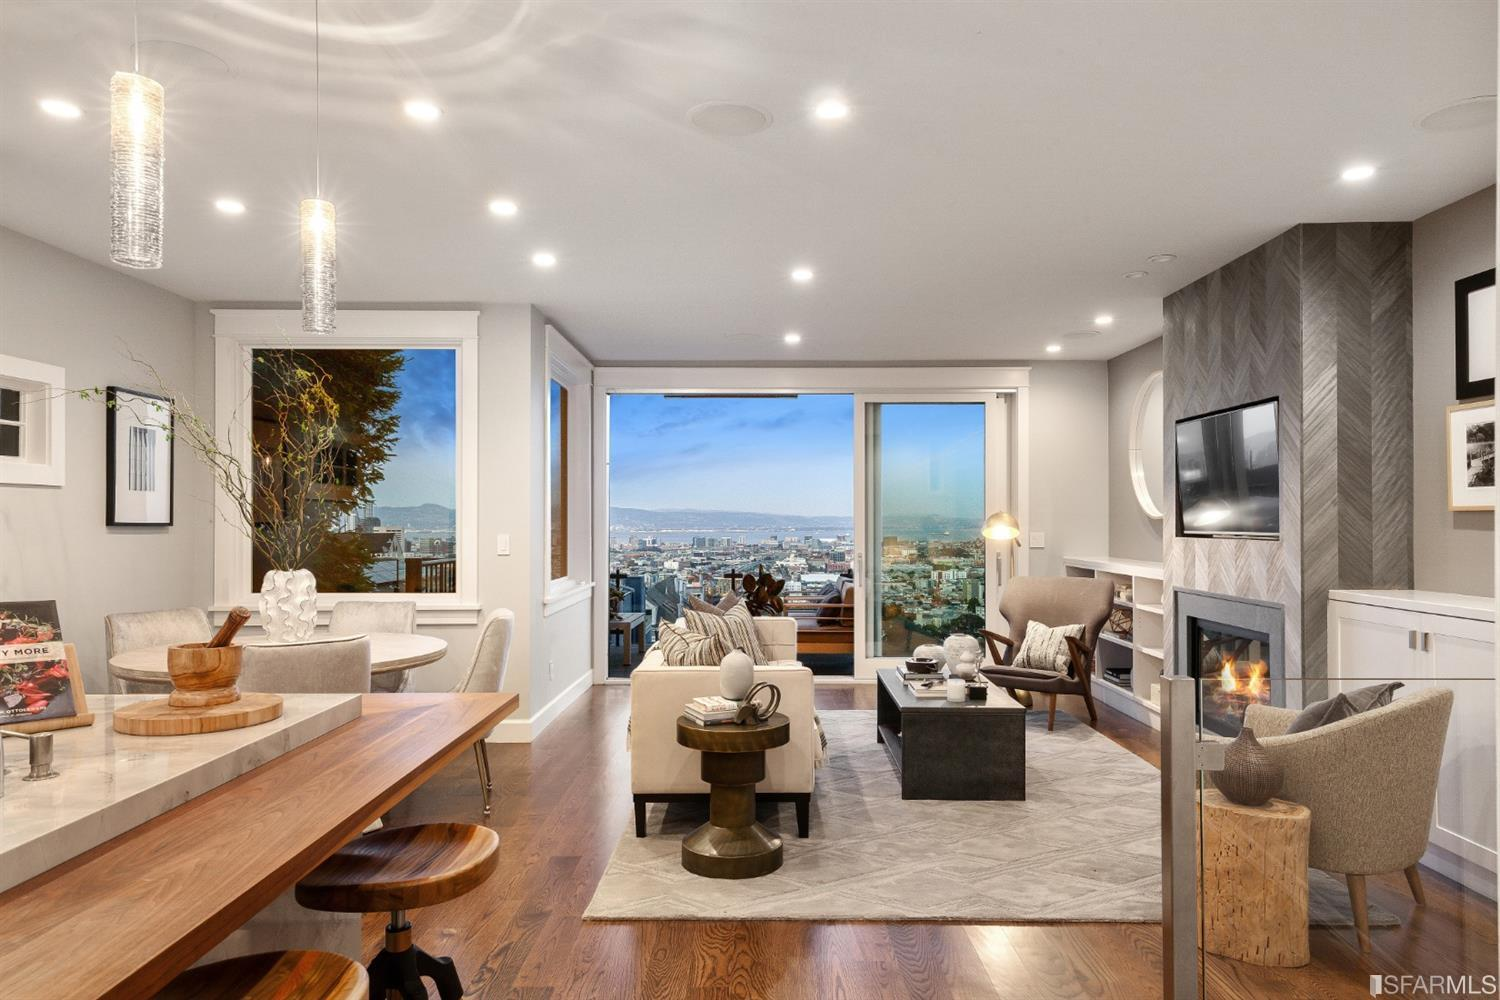 Gray and White living room overlooking the city at night